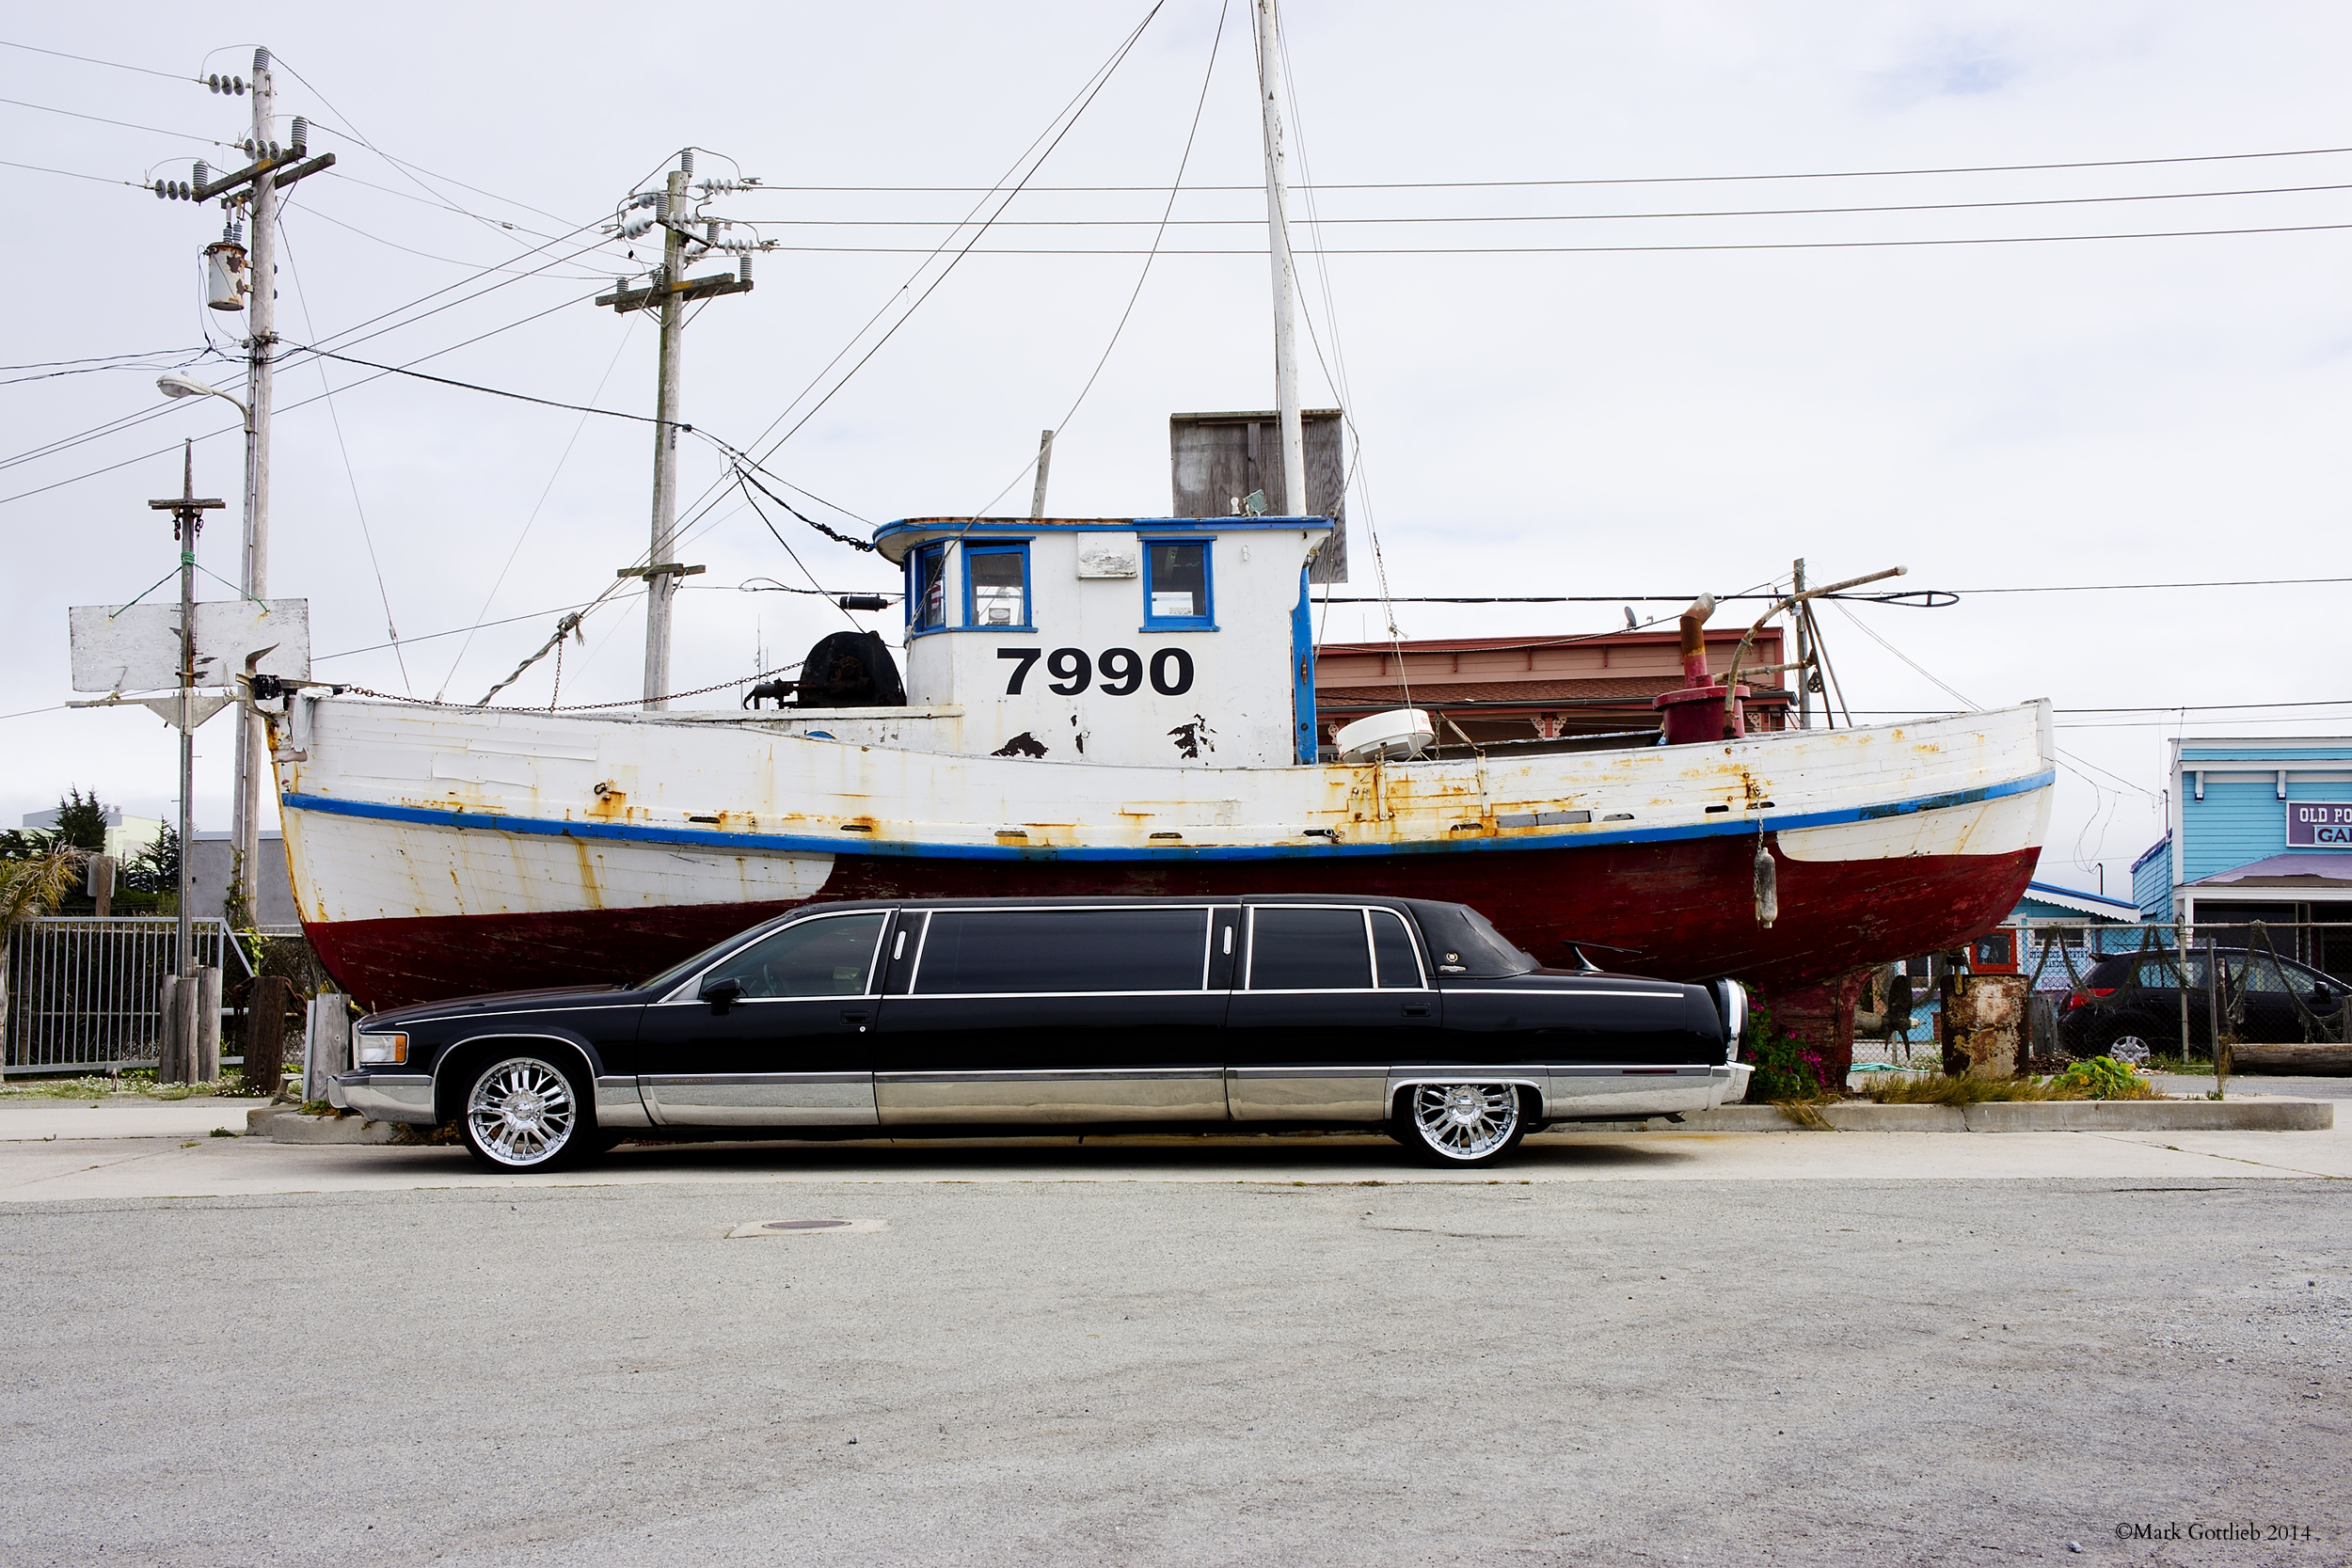 Extended Limo and Fishing Boat